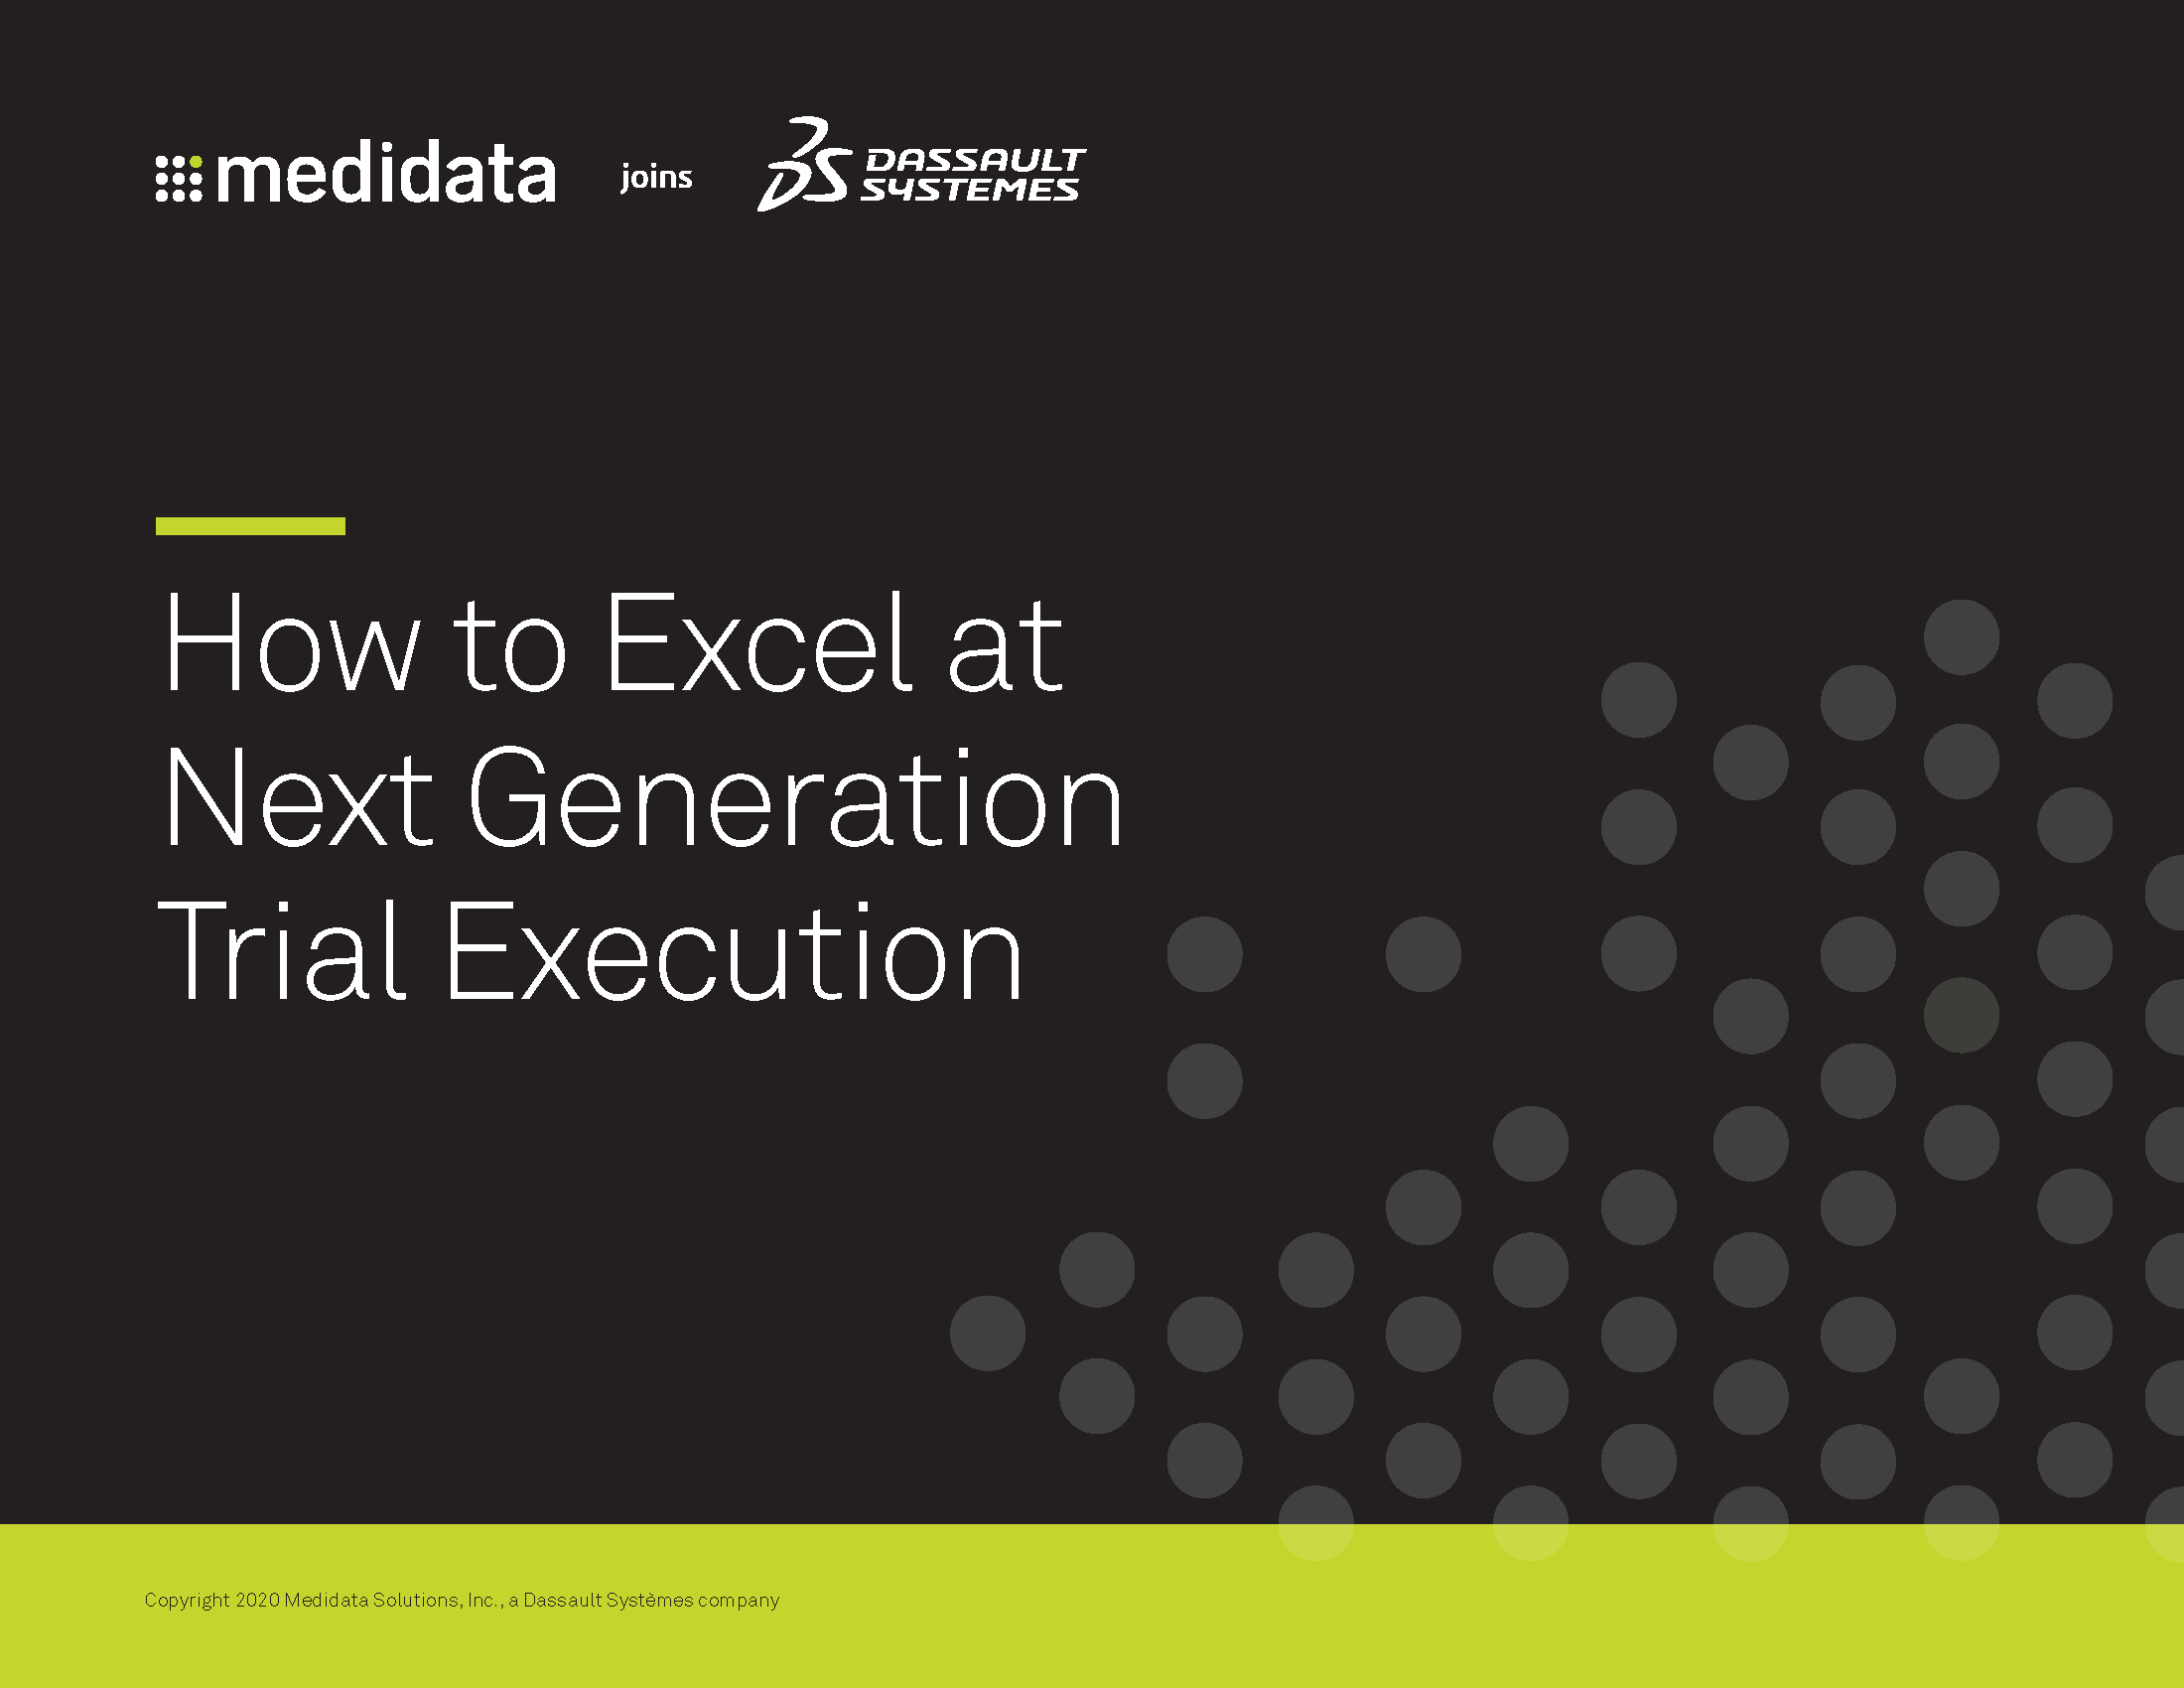 How to Excel at Next Generation Trial Execution